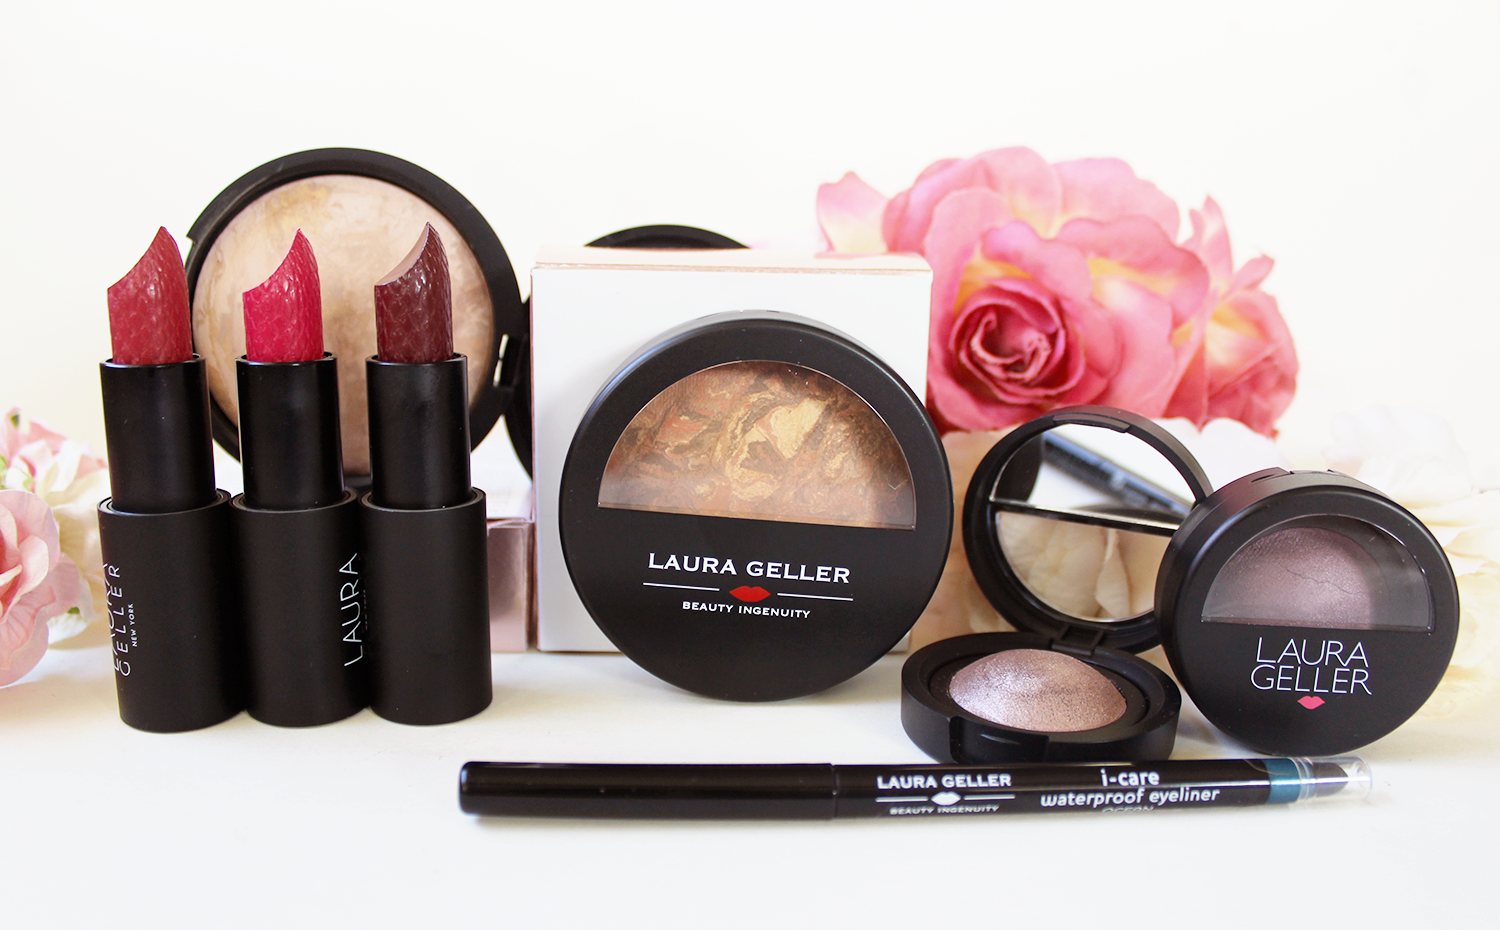 I Am So Delighted To Share A Few Products From Laura Geller On Friday My Sister Her Boyfriend And Decided Go The Mall Way